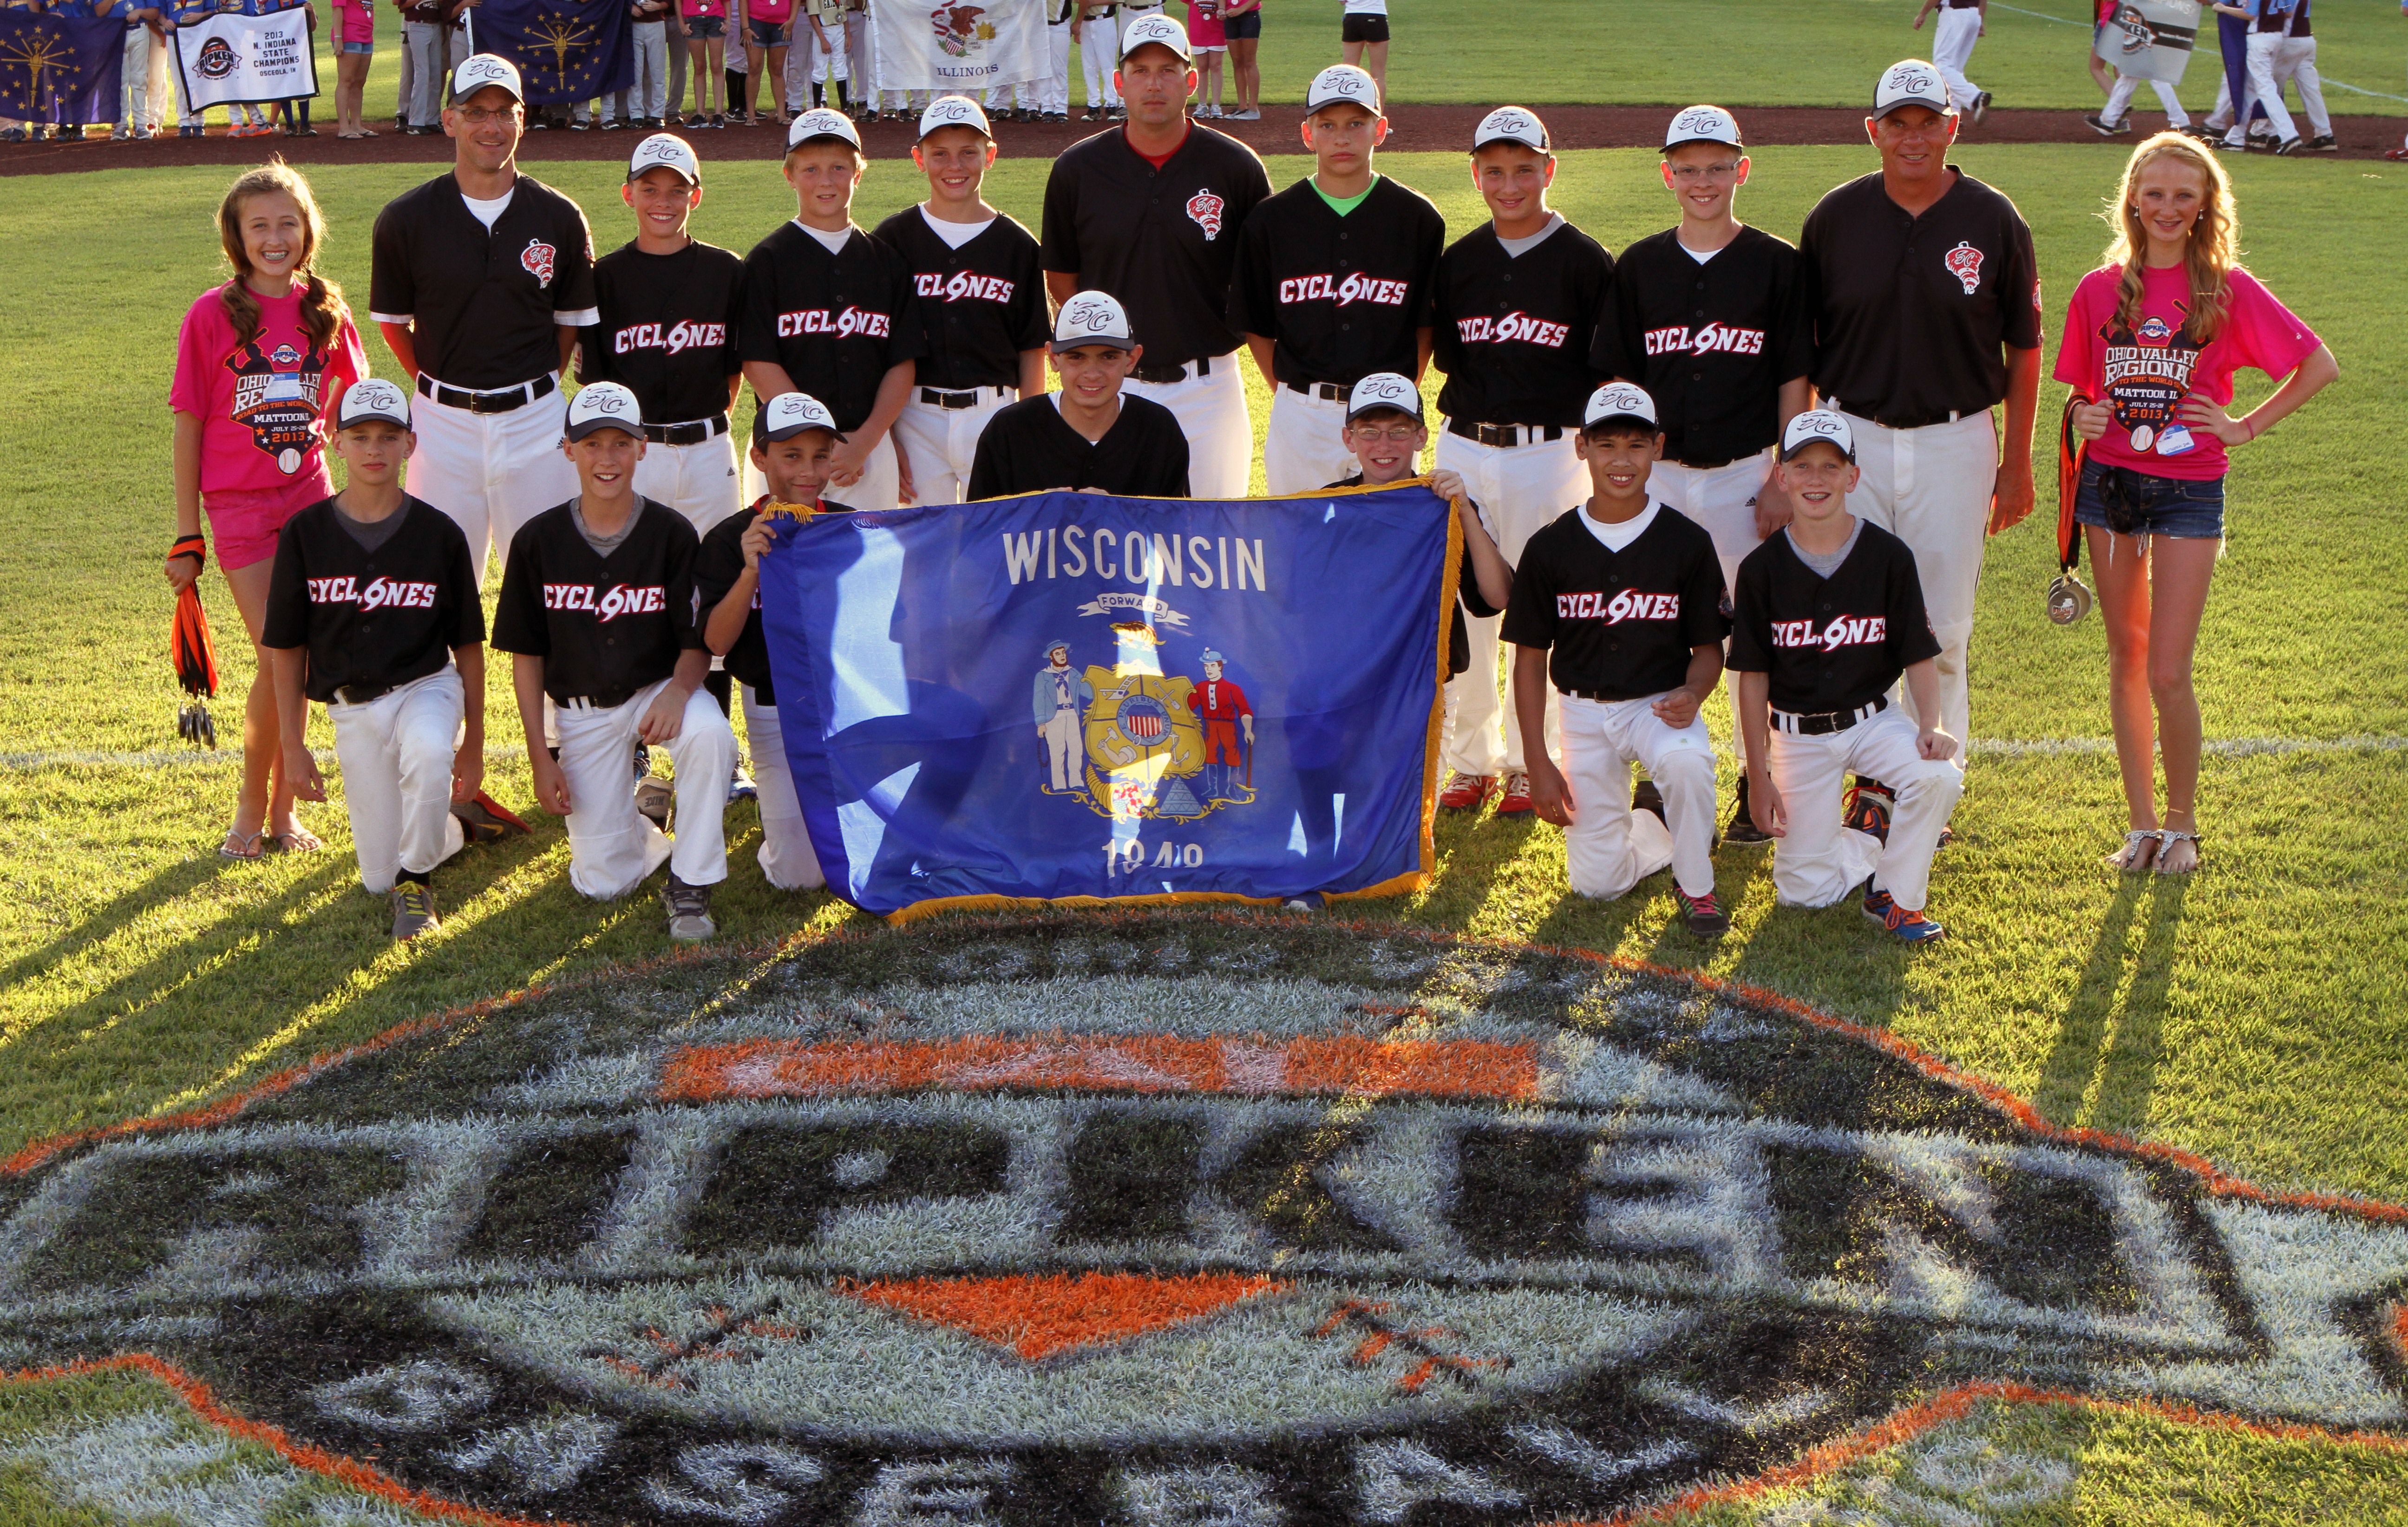 Representing Wisconsin at Cal Ripken Regional Tournament